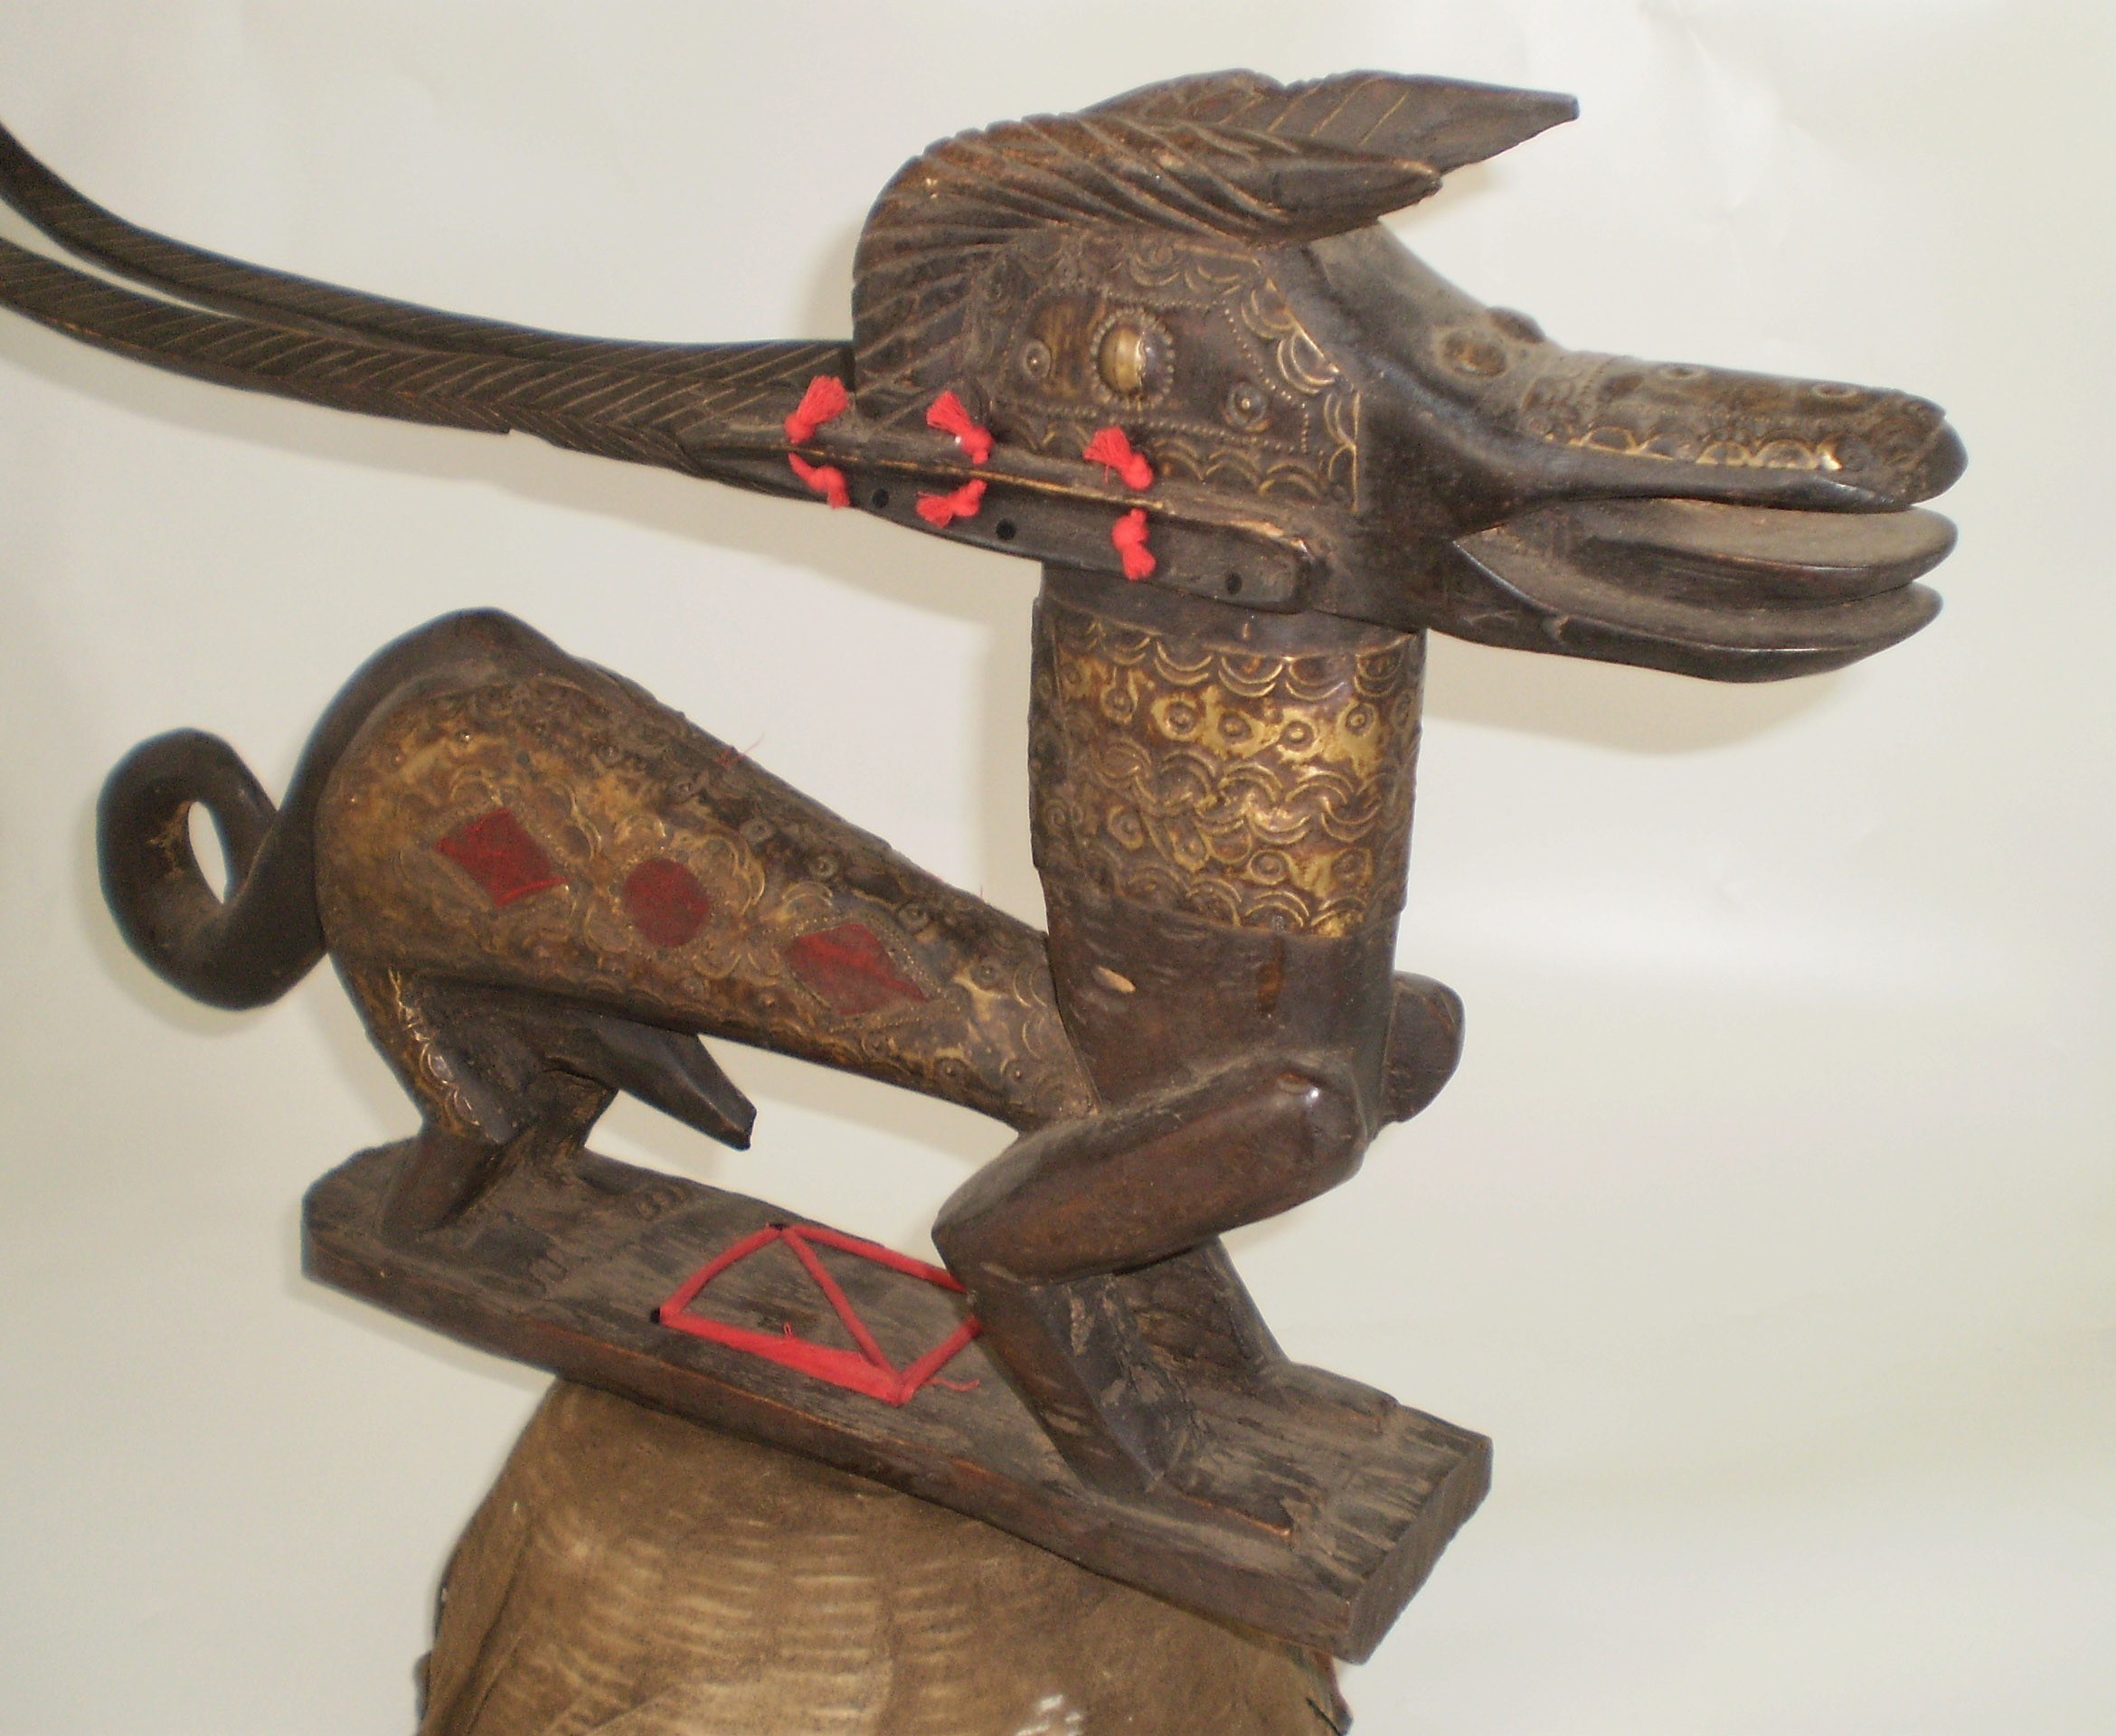 Wooden carved dog with a woven base that can be worn on the head.